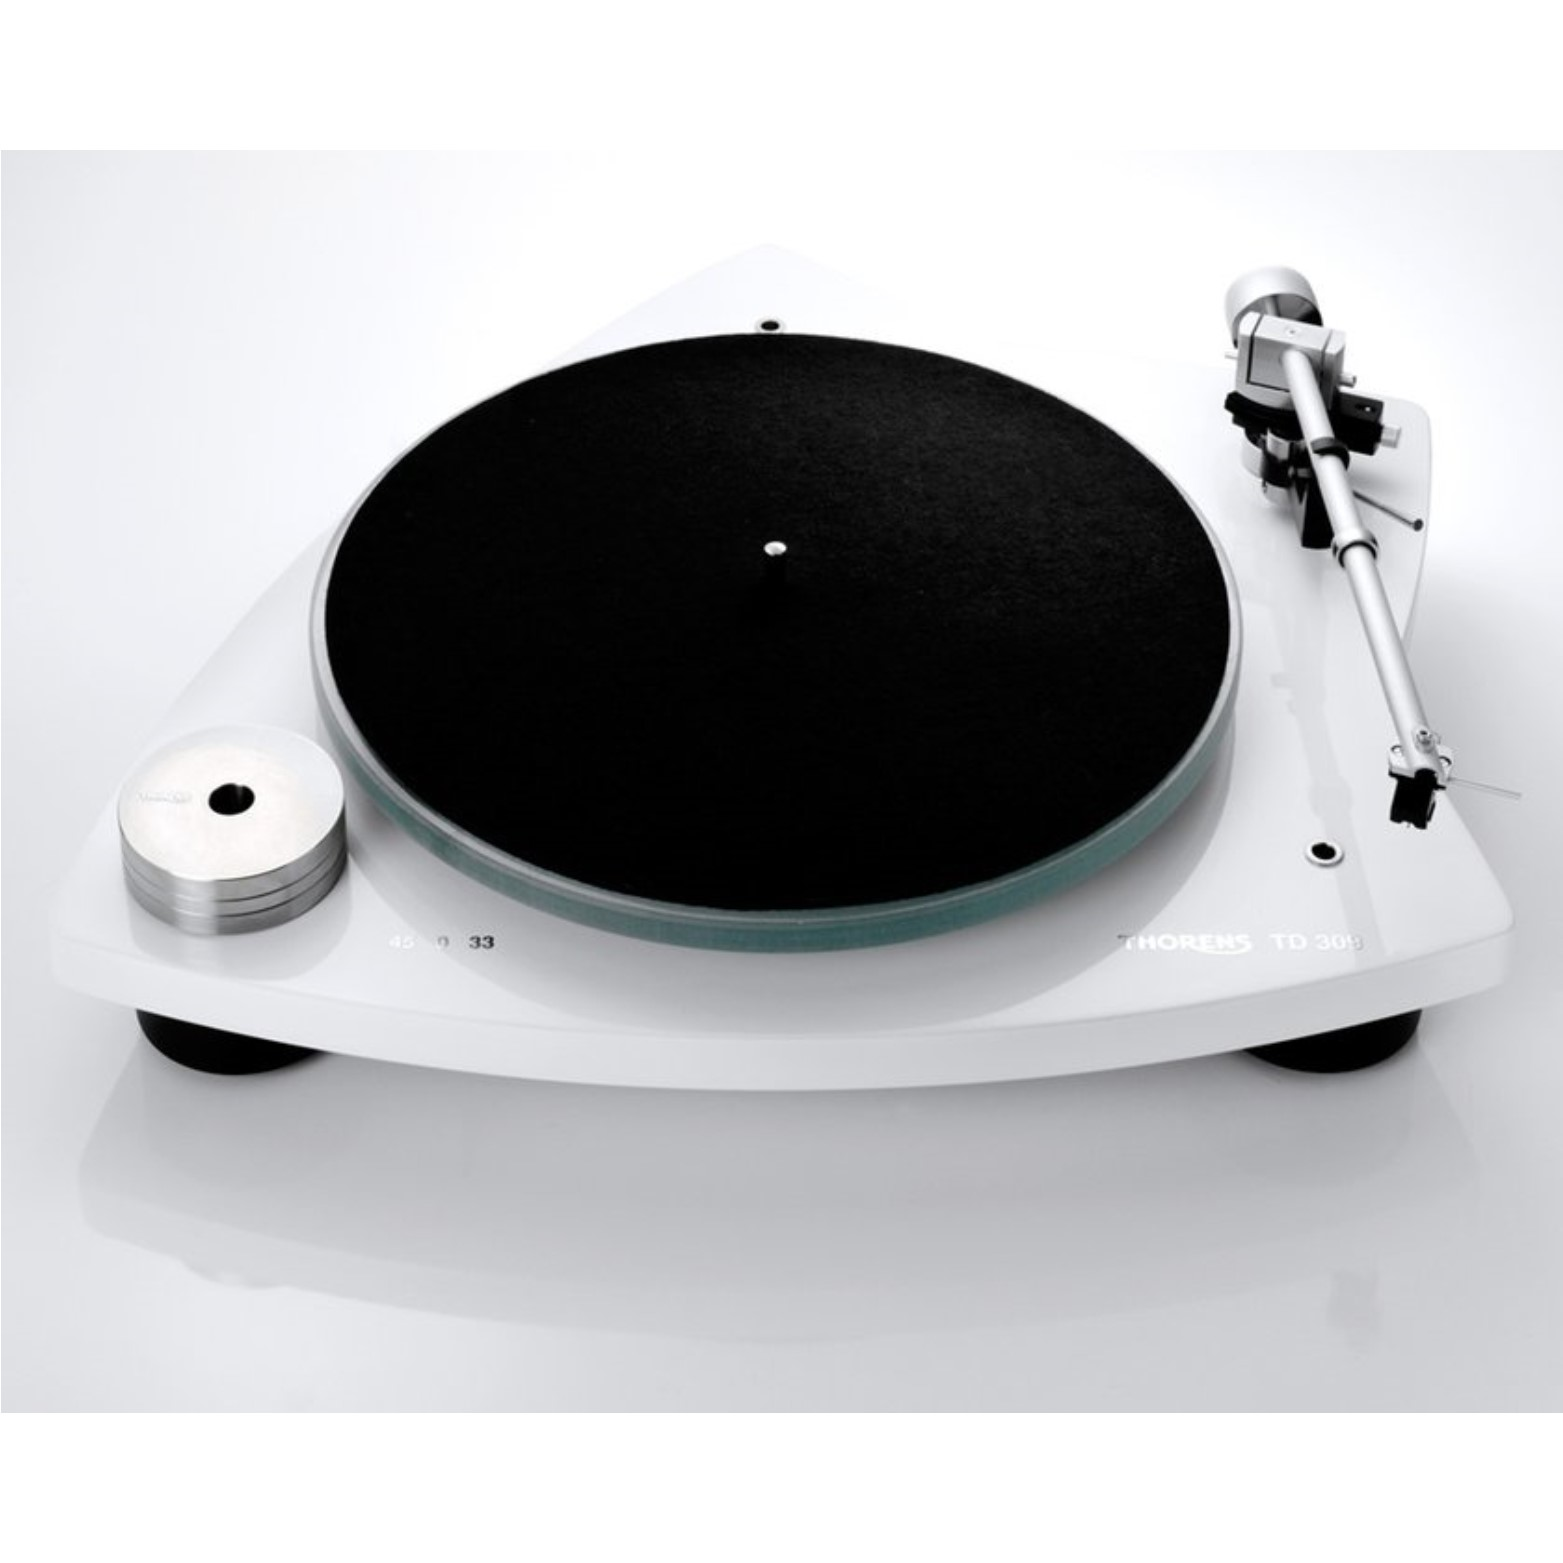 THORENS TD 309 Tri-Balance Turntable with TP 92 Tonearm